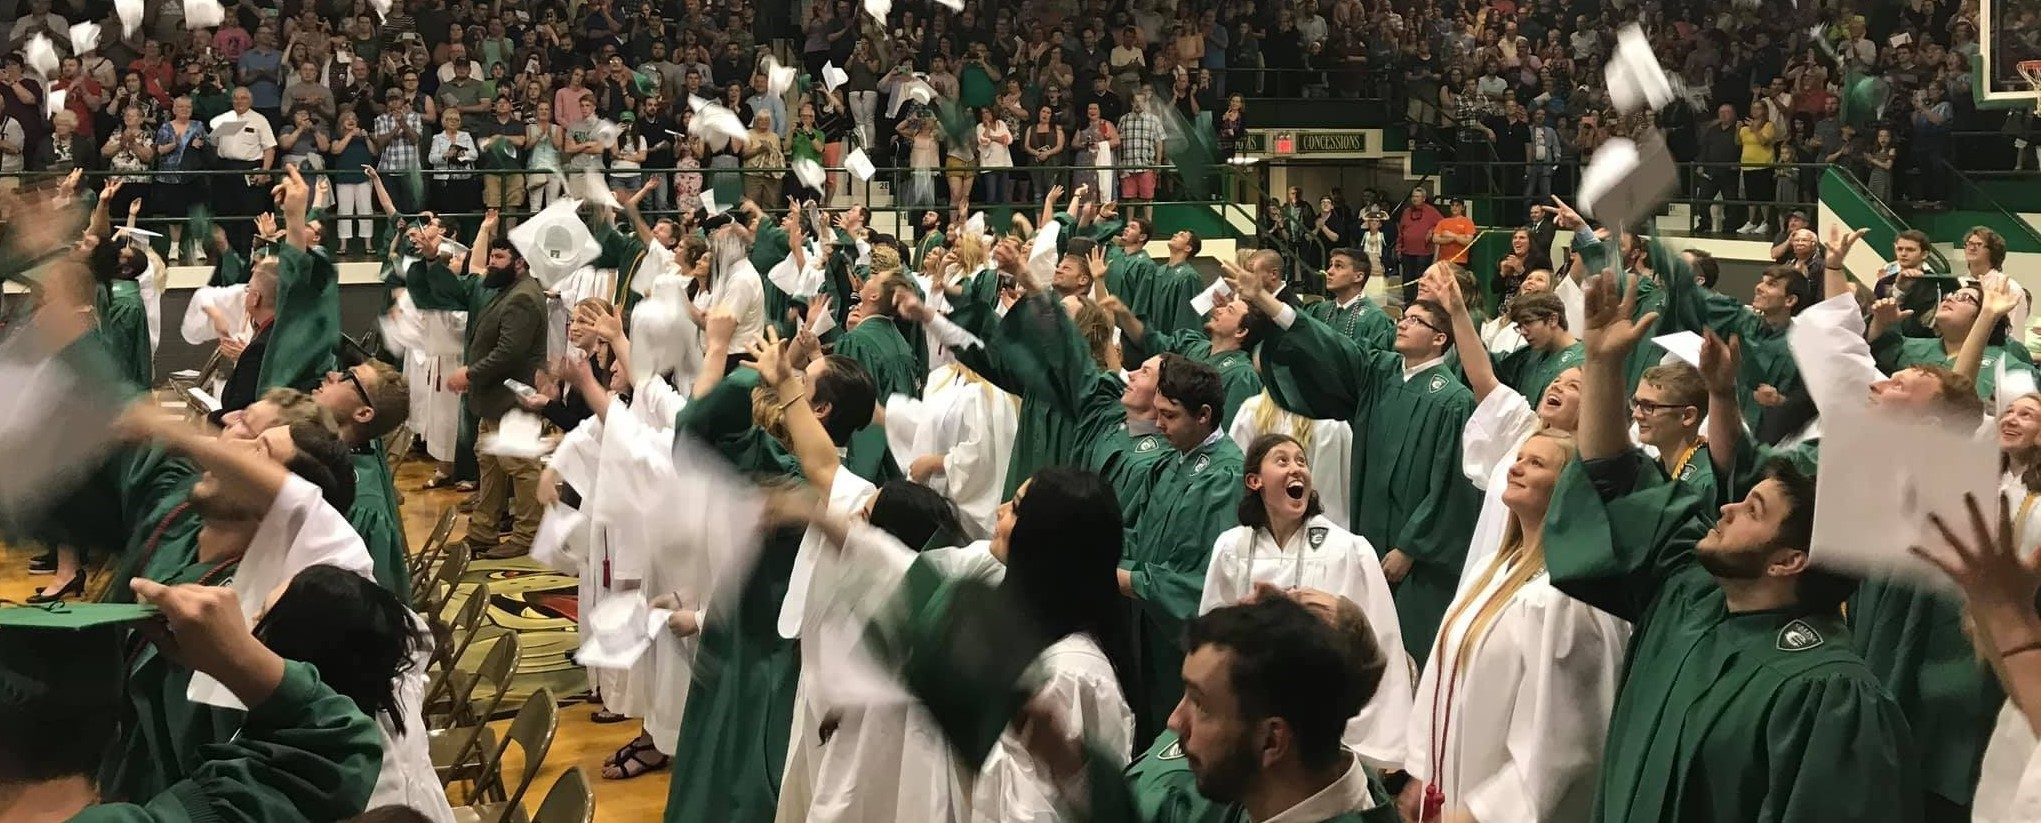 Graduation 2019 at Celina Field House, May 19, 2019.